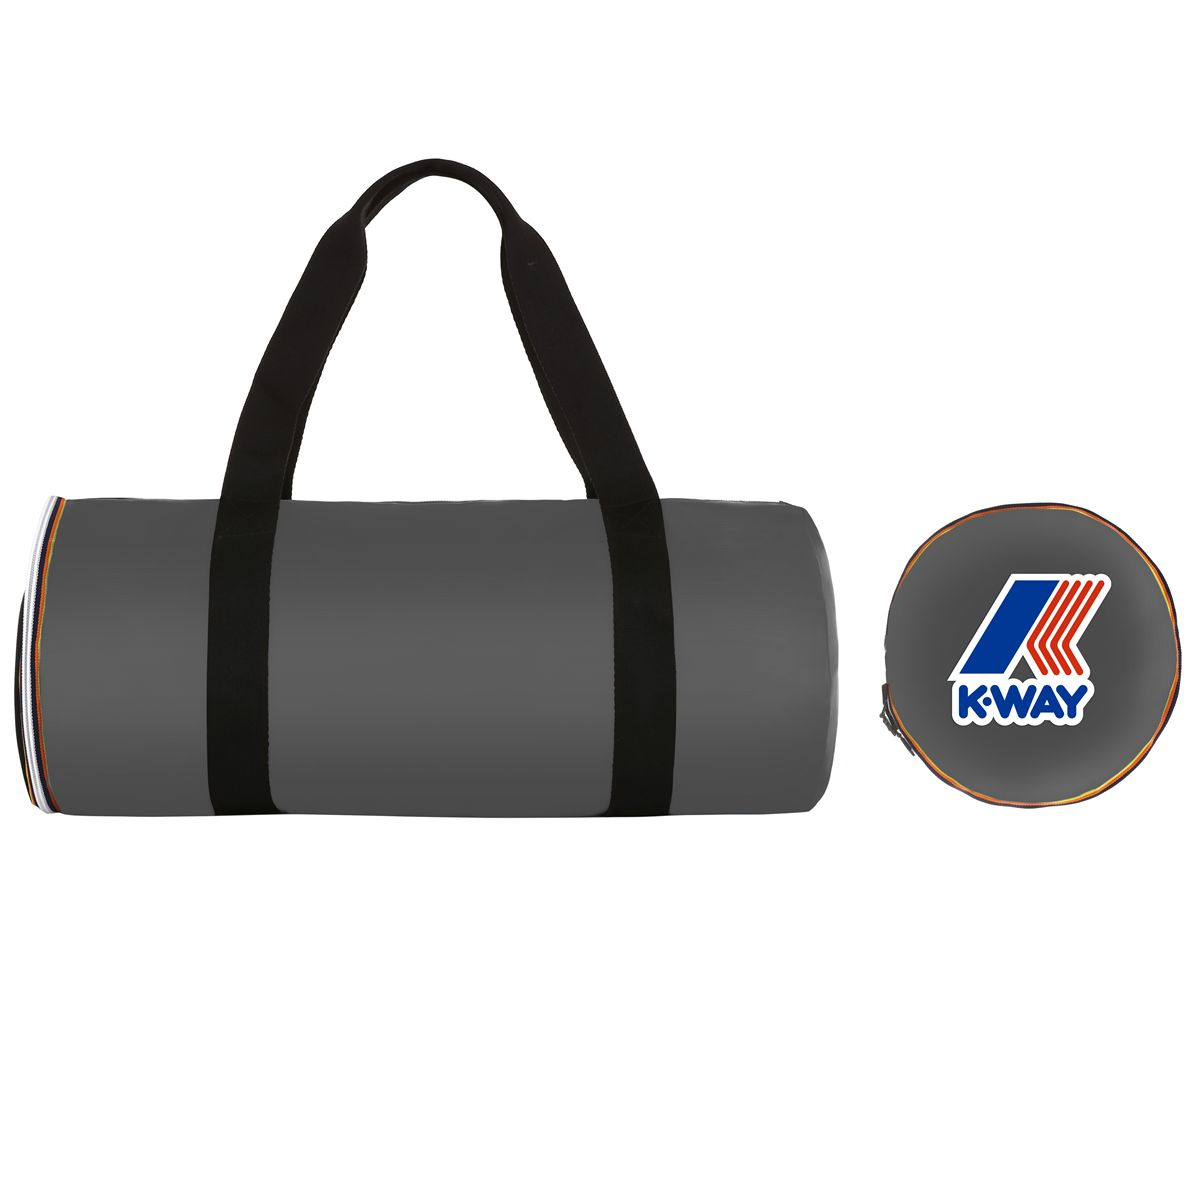 K-Way Bag LE VRAI 3.0 DAVID Duffle Man Woman